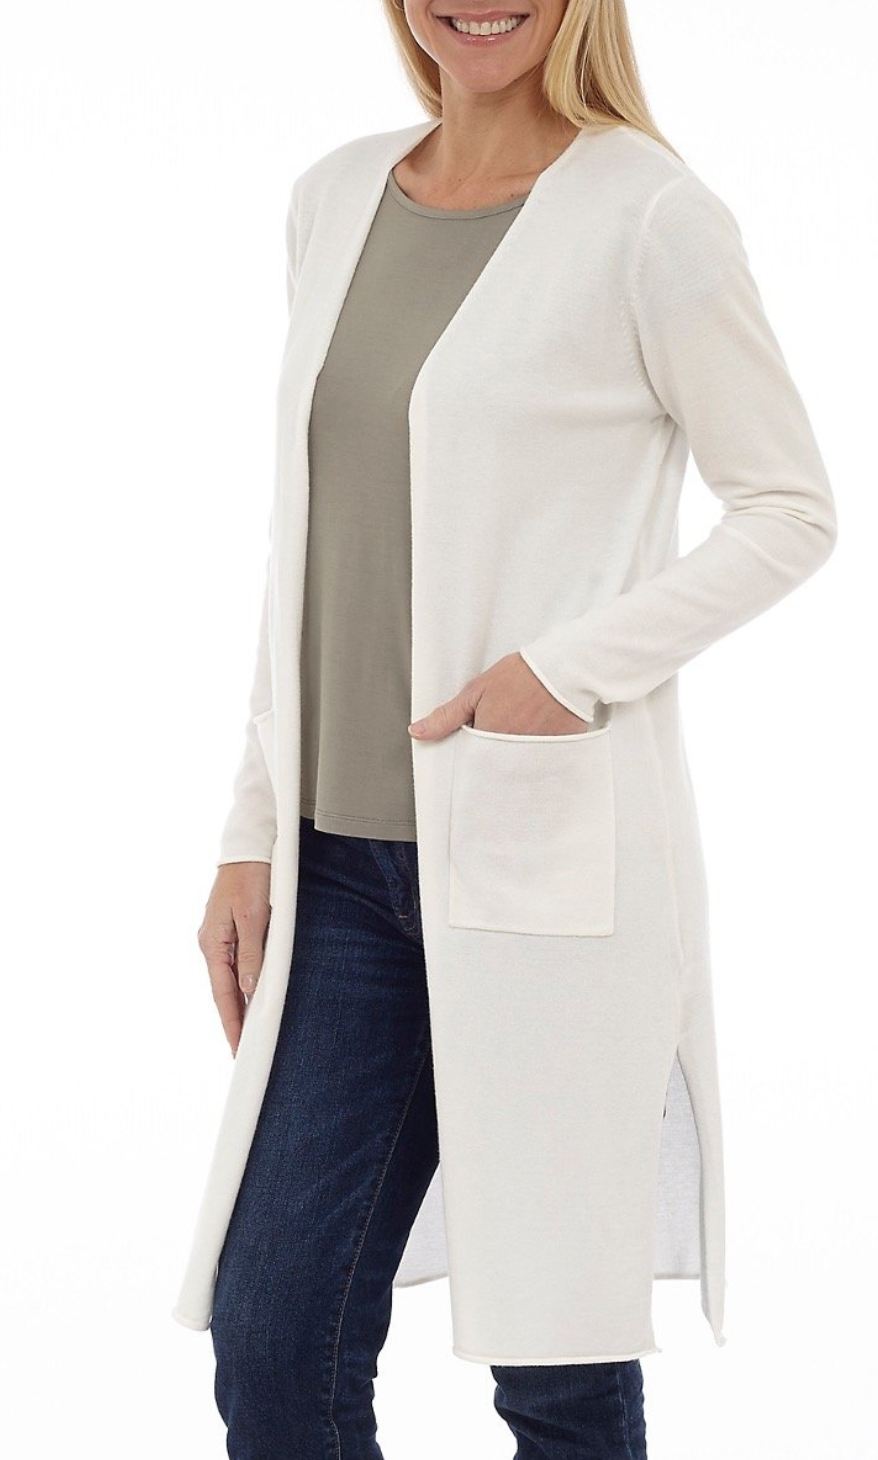 Long Body Open Cardigan with Pockets